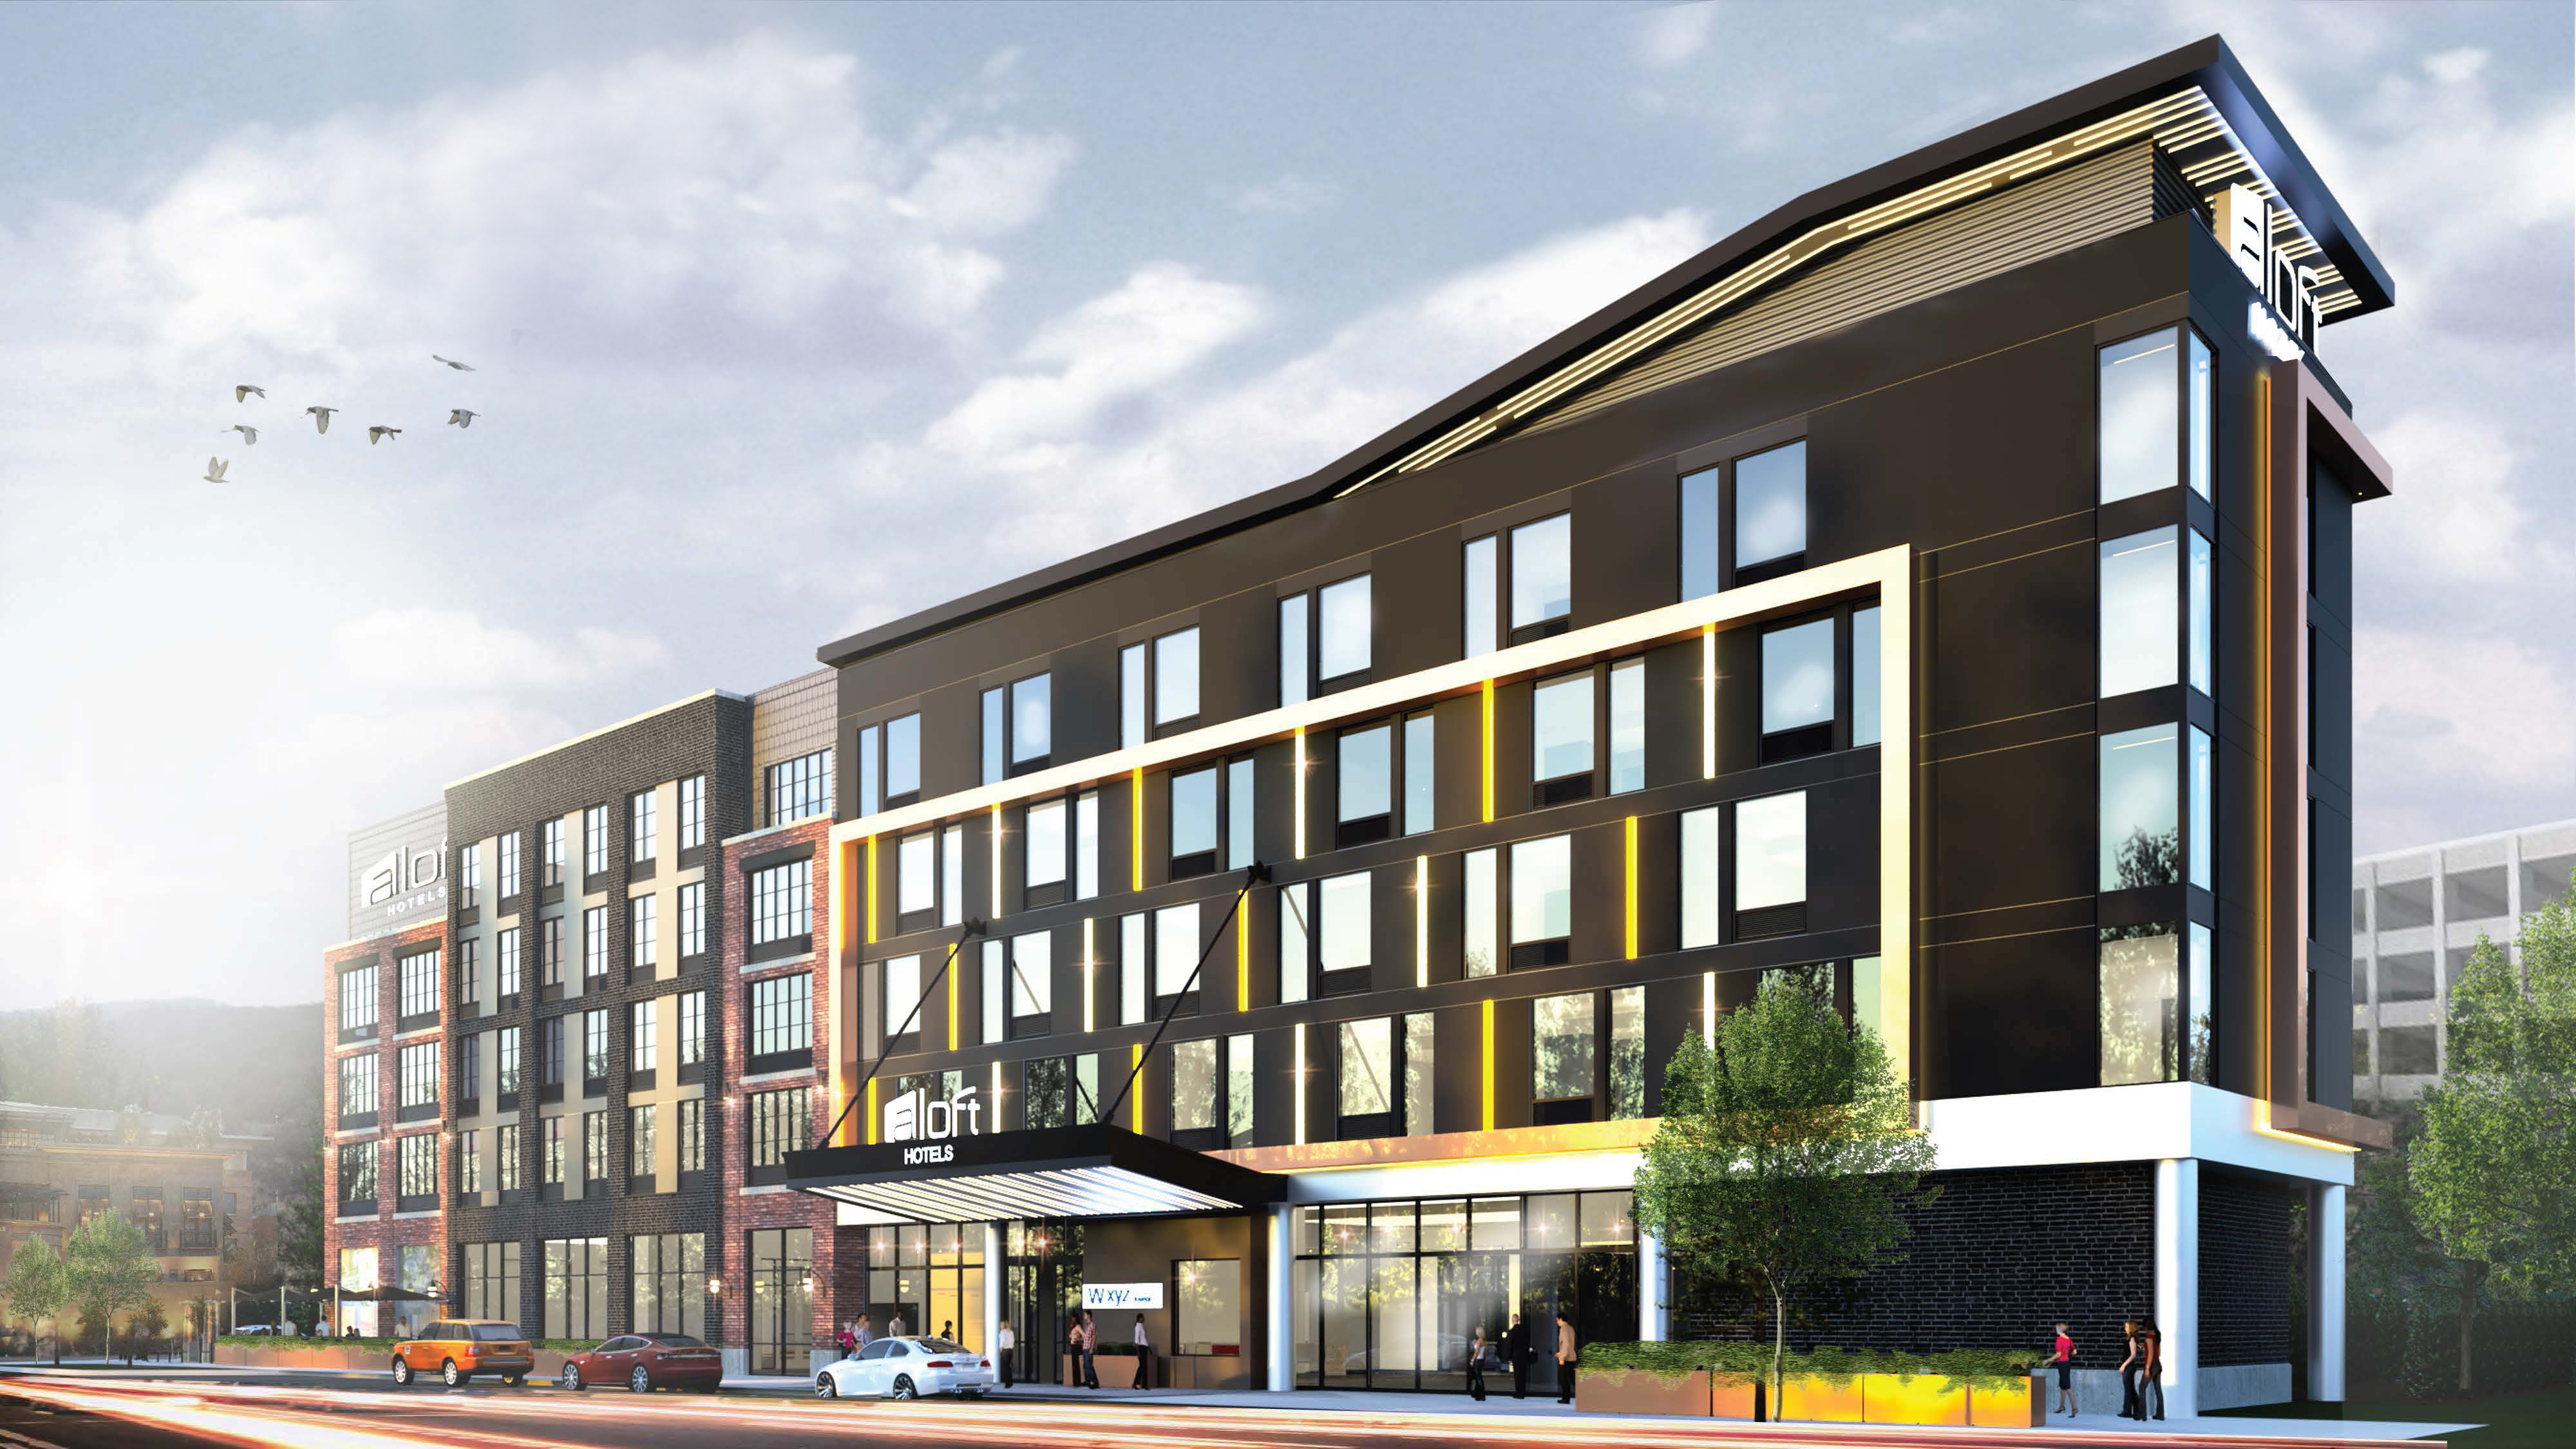 Aloft Easton - Rendering